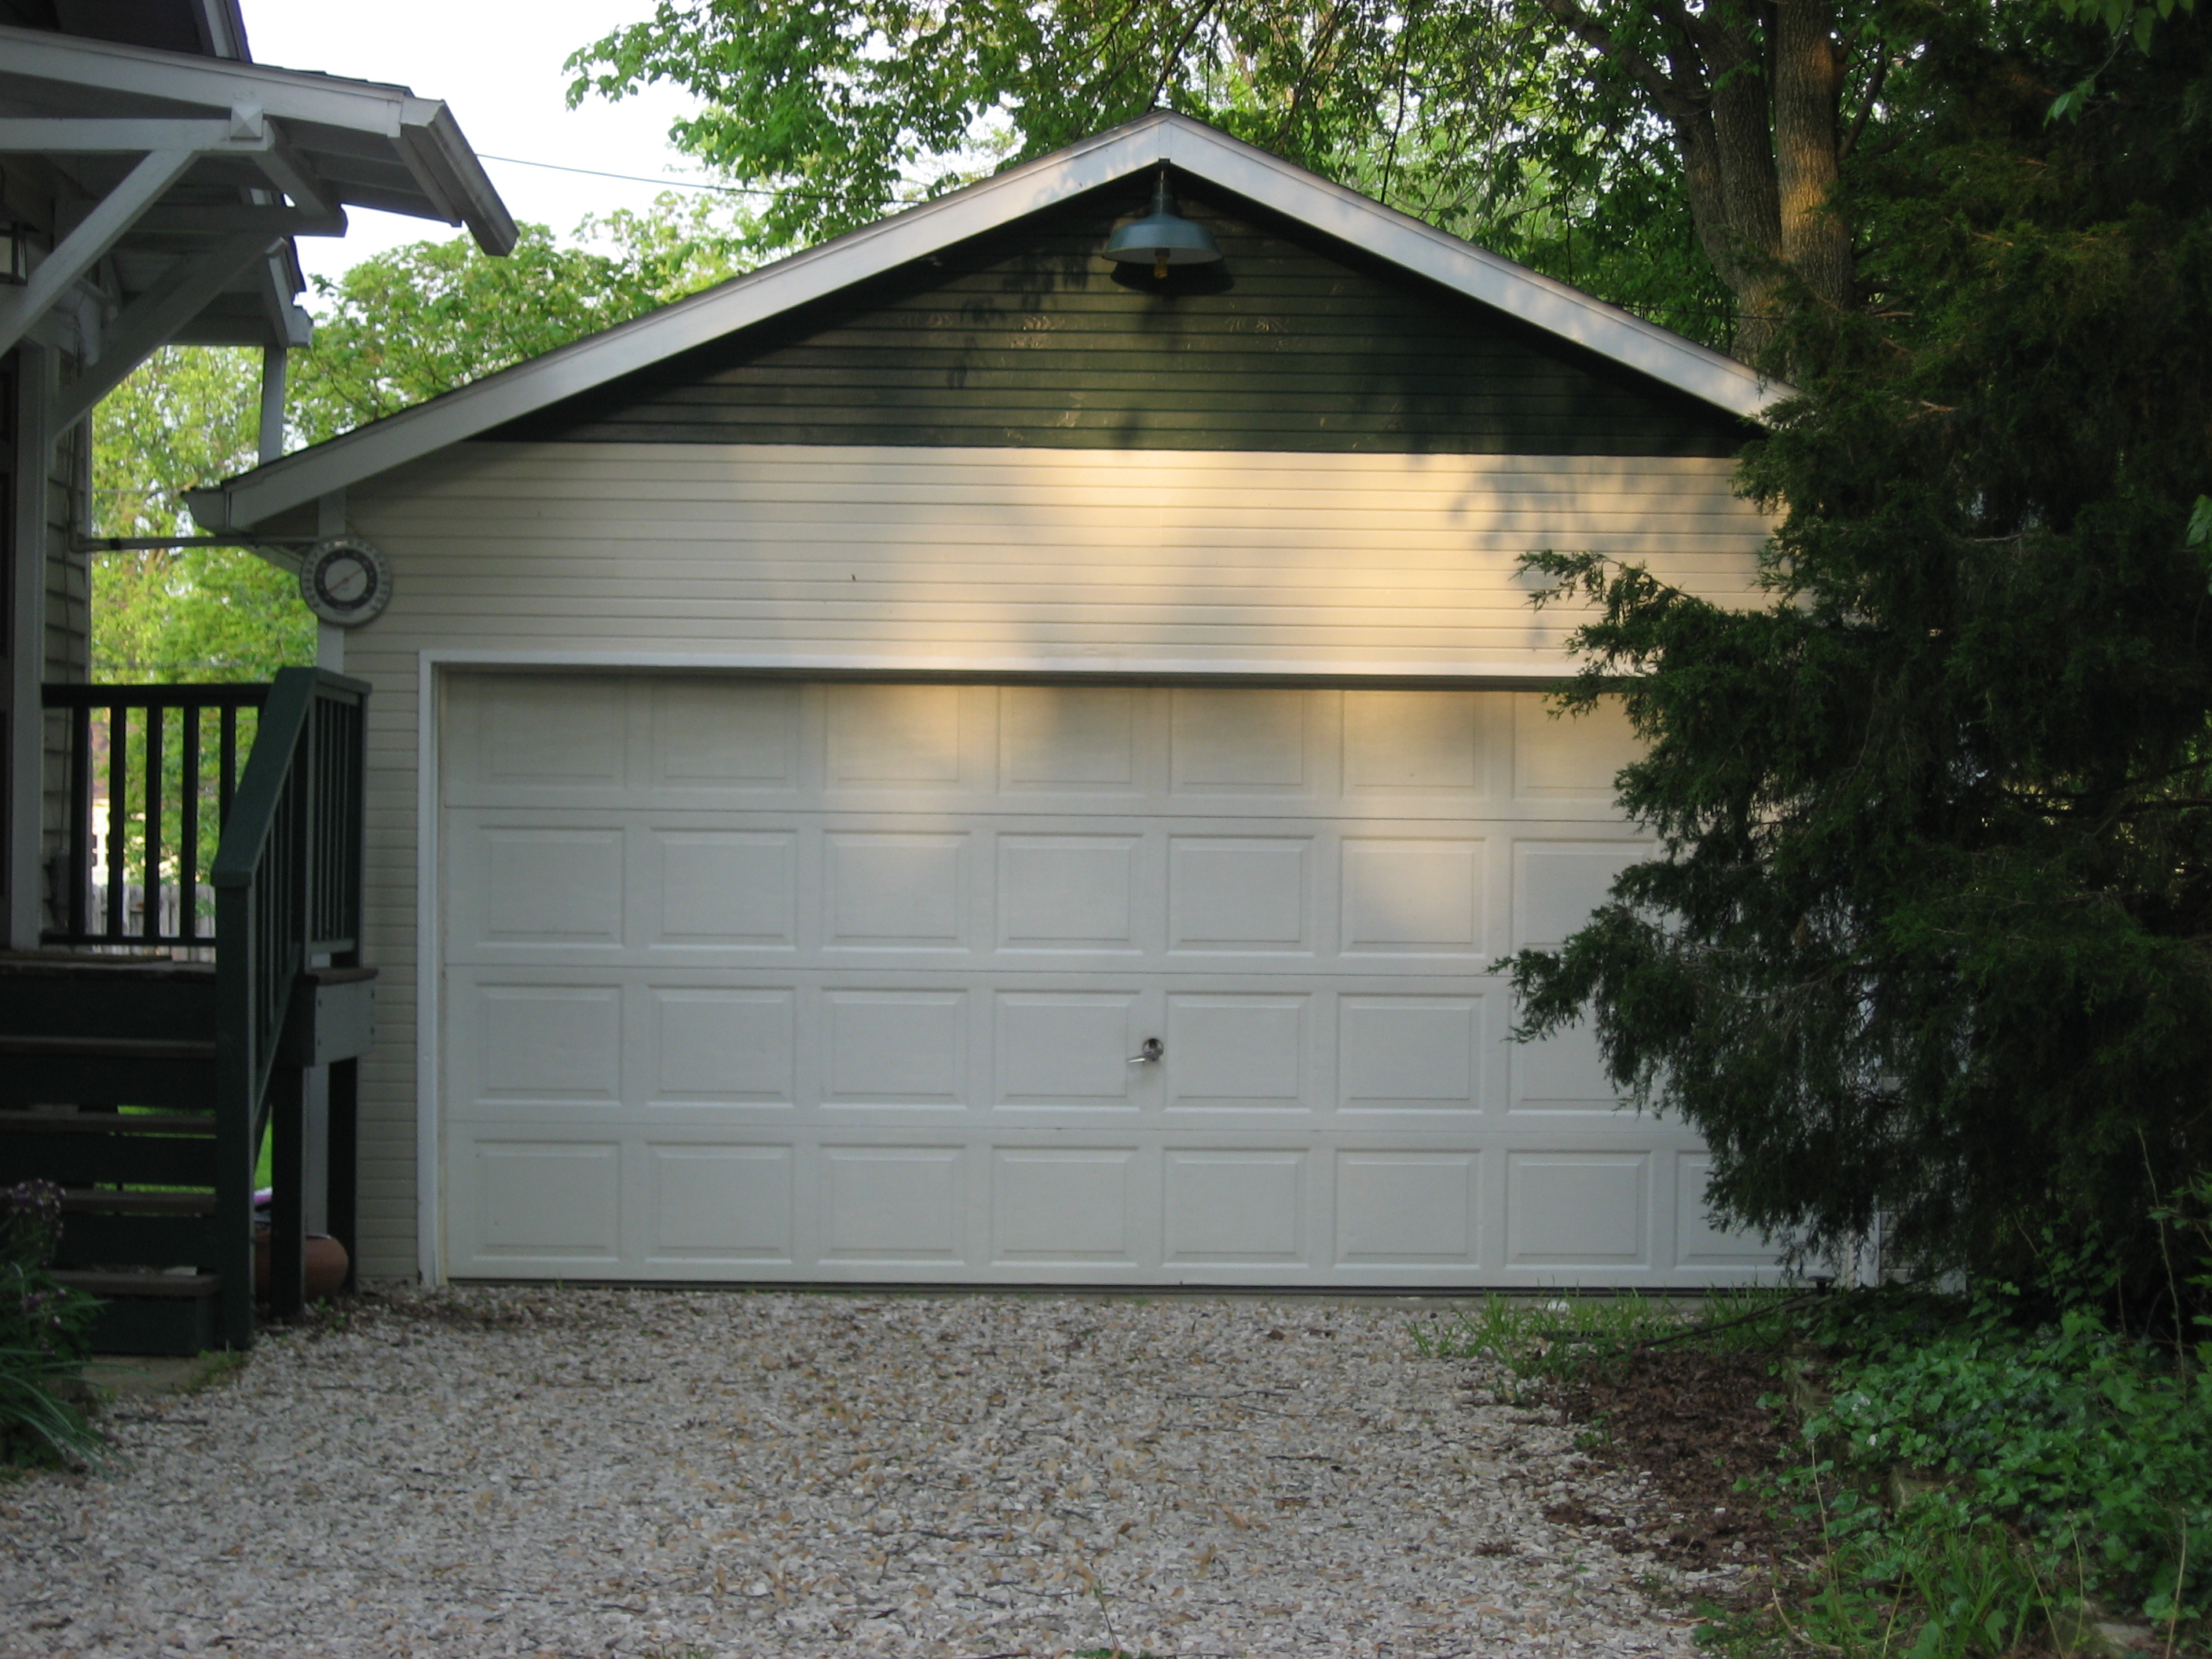 File Maple Street South 111 Garage Bloomington West Side